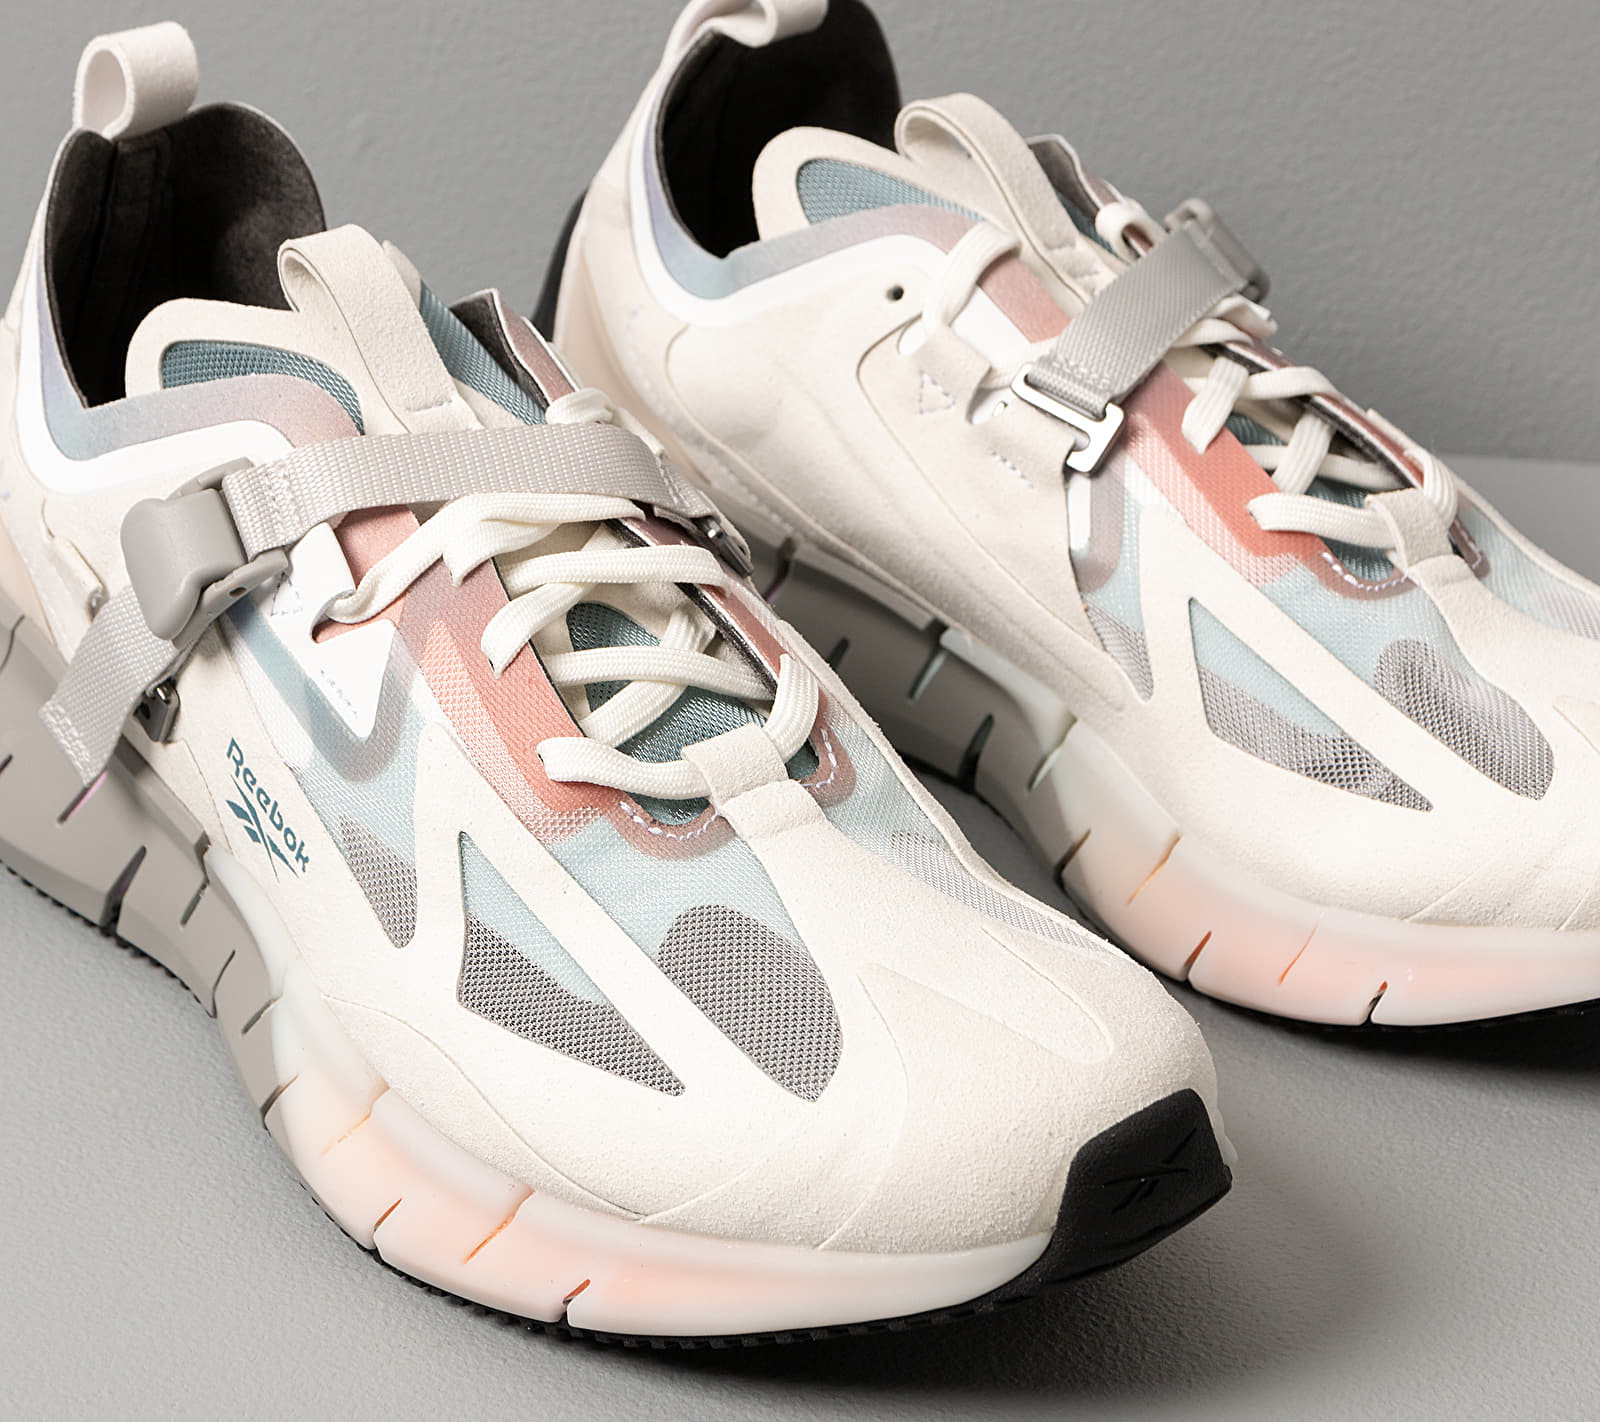 Reebok Zig Kinetica Concept_Type1 Sand Stone/ White/ Rose Dust, Brown